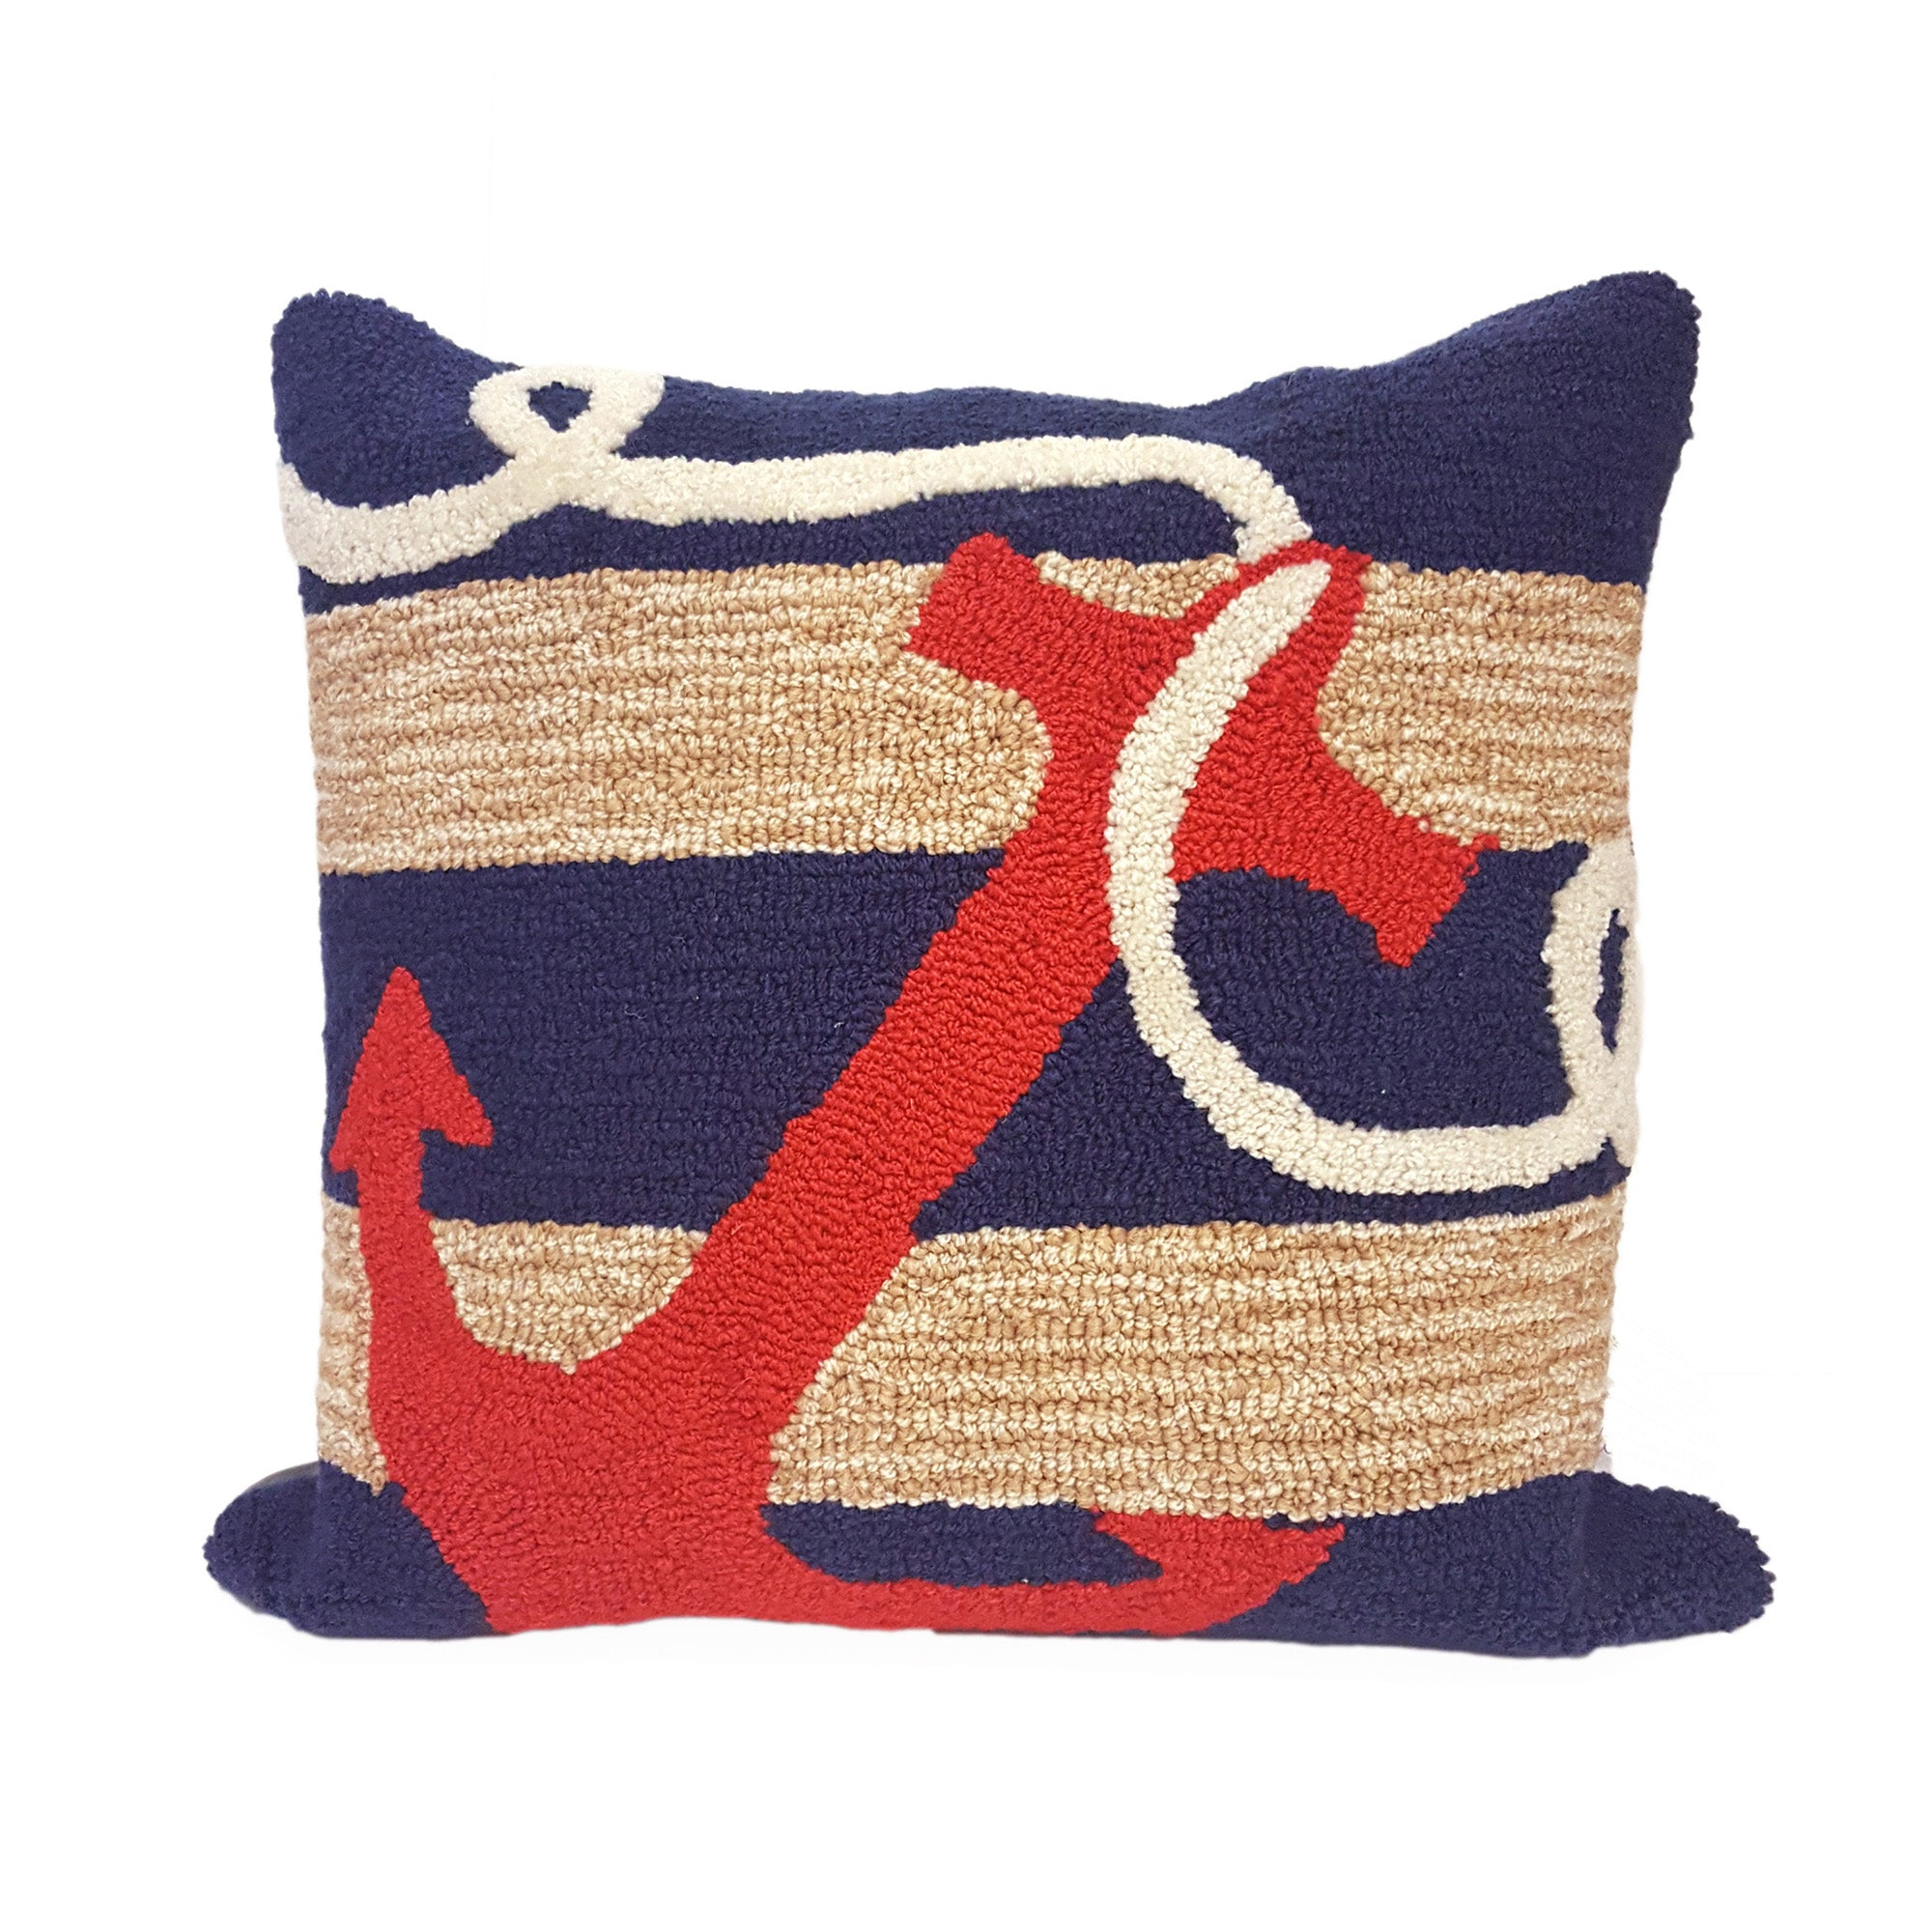 Liora Manne Frontporch Anchor Indoor/Outdoor Pillow Navy 18